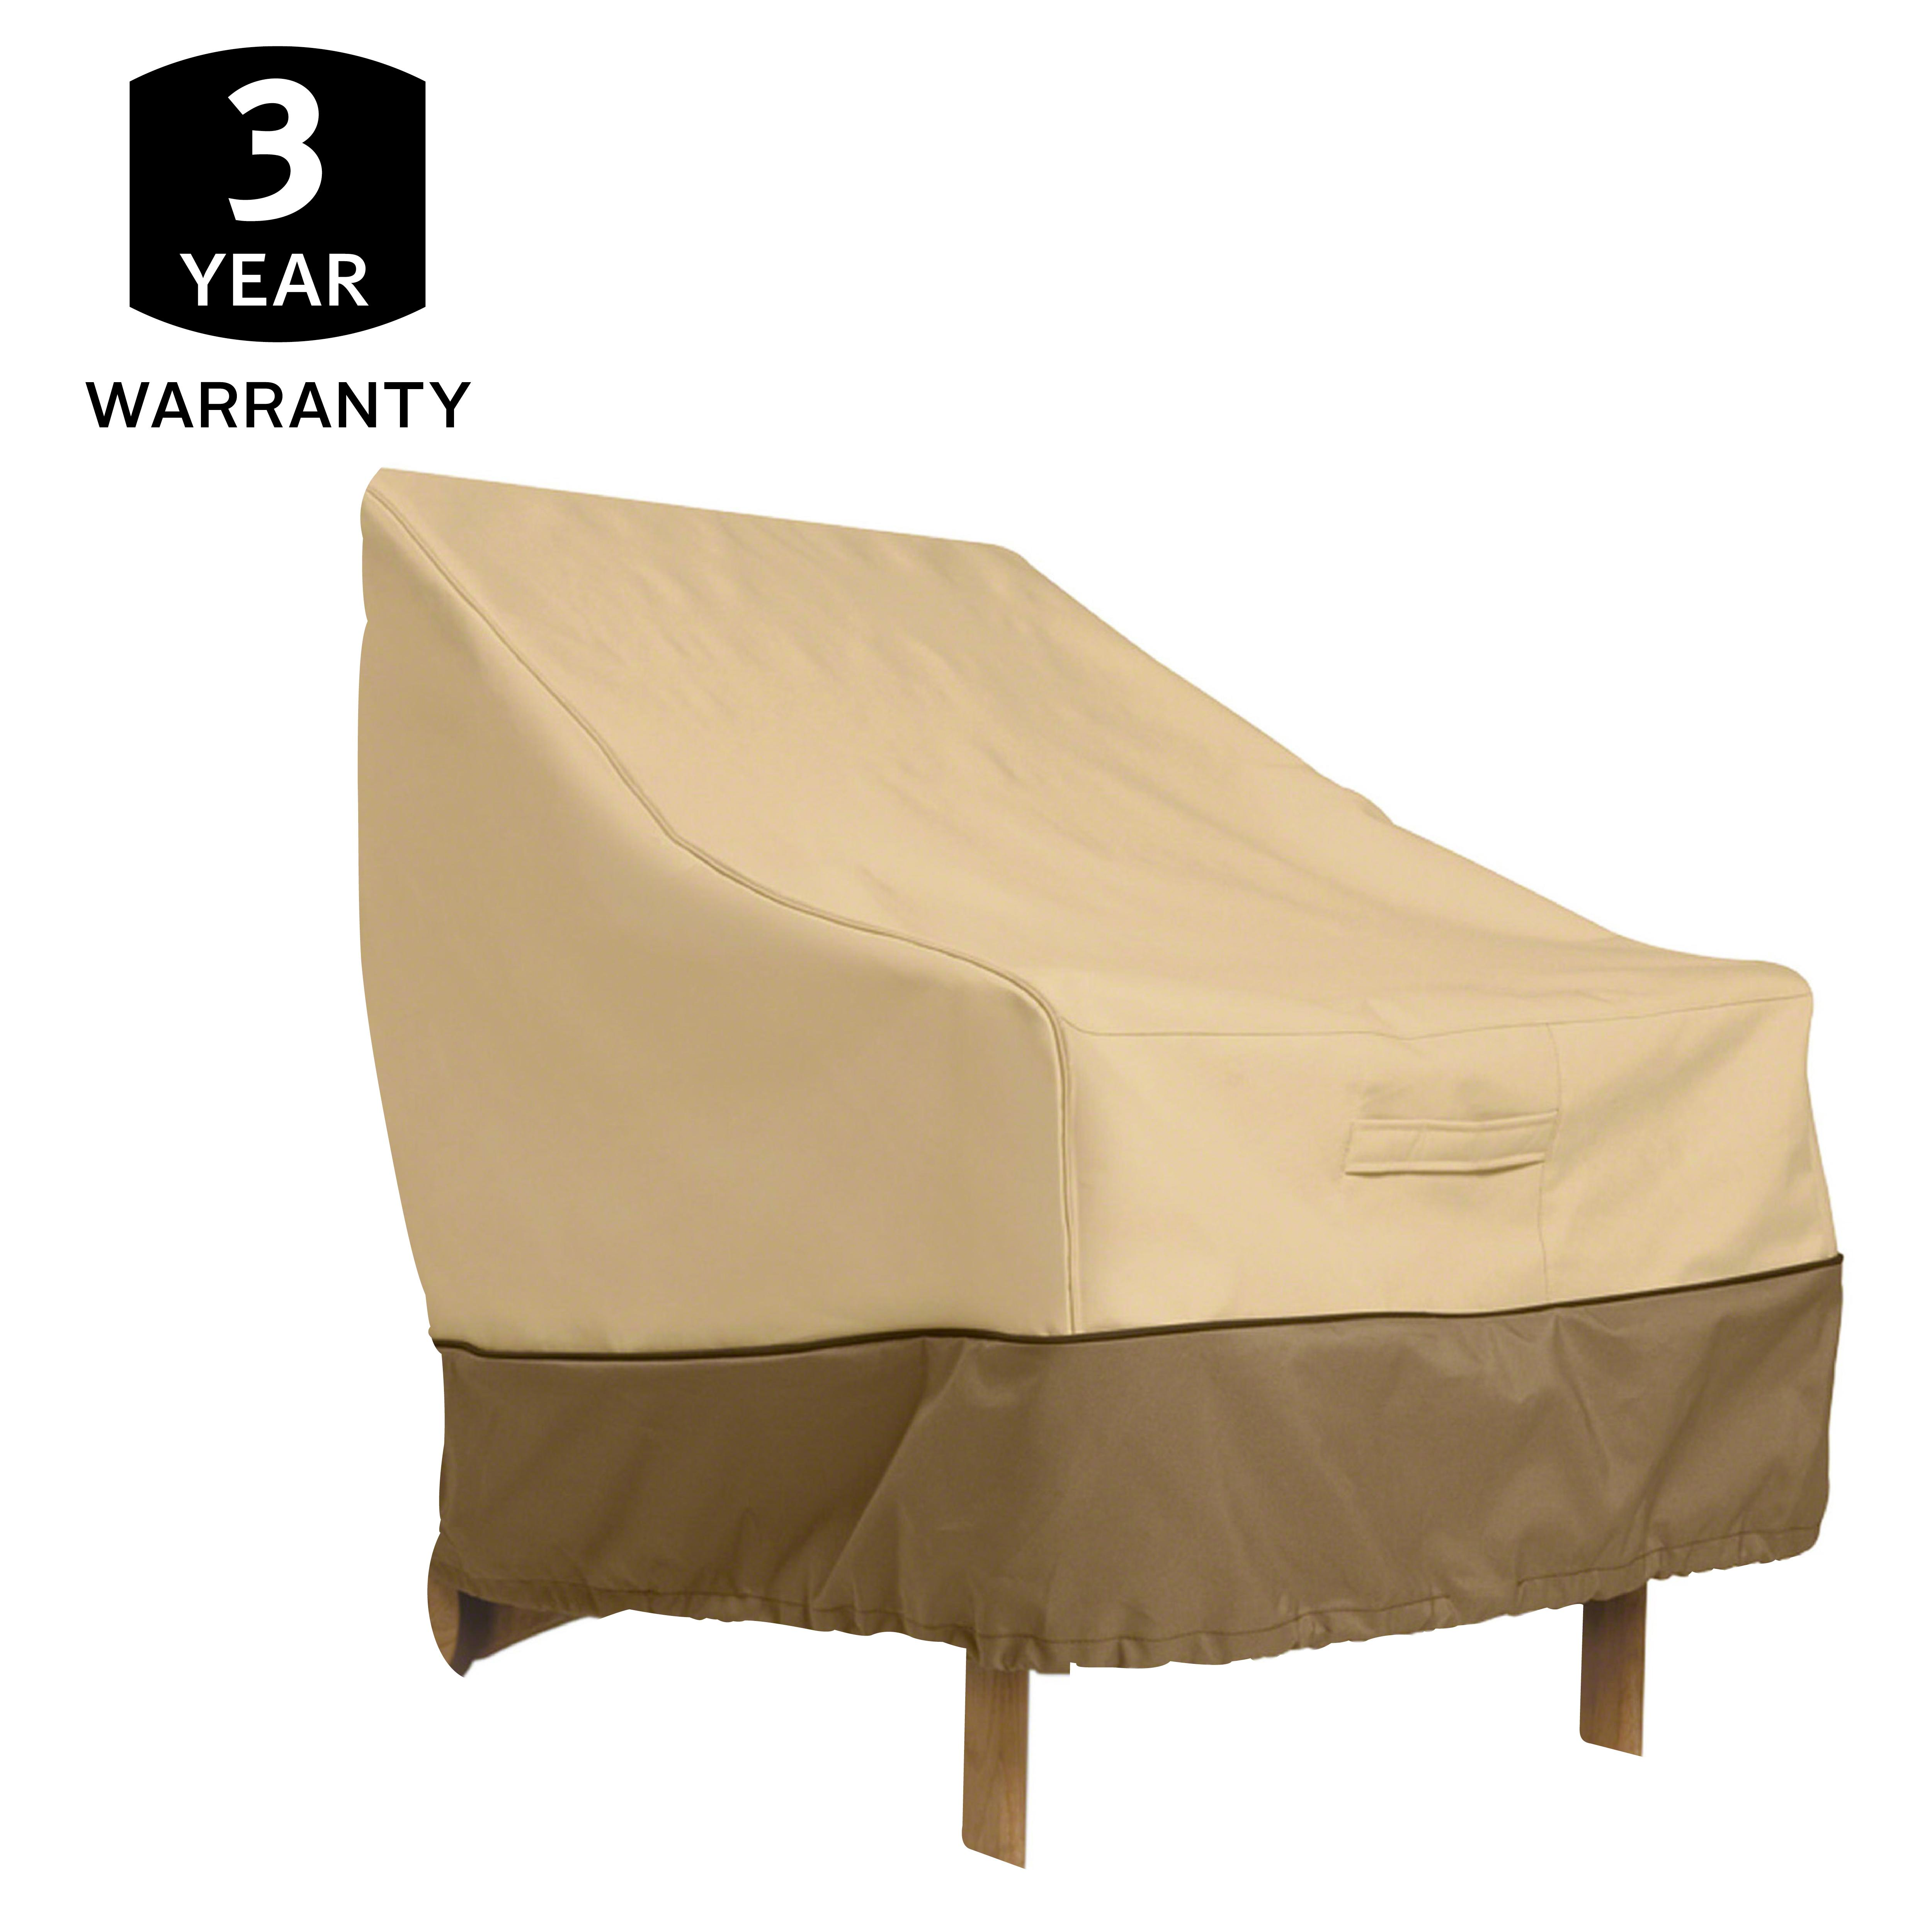 Classic Accessories Veranda Patio Lounge Chair Cover Veranda Furniture Covers